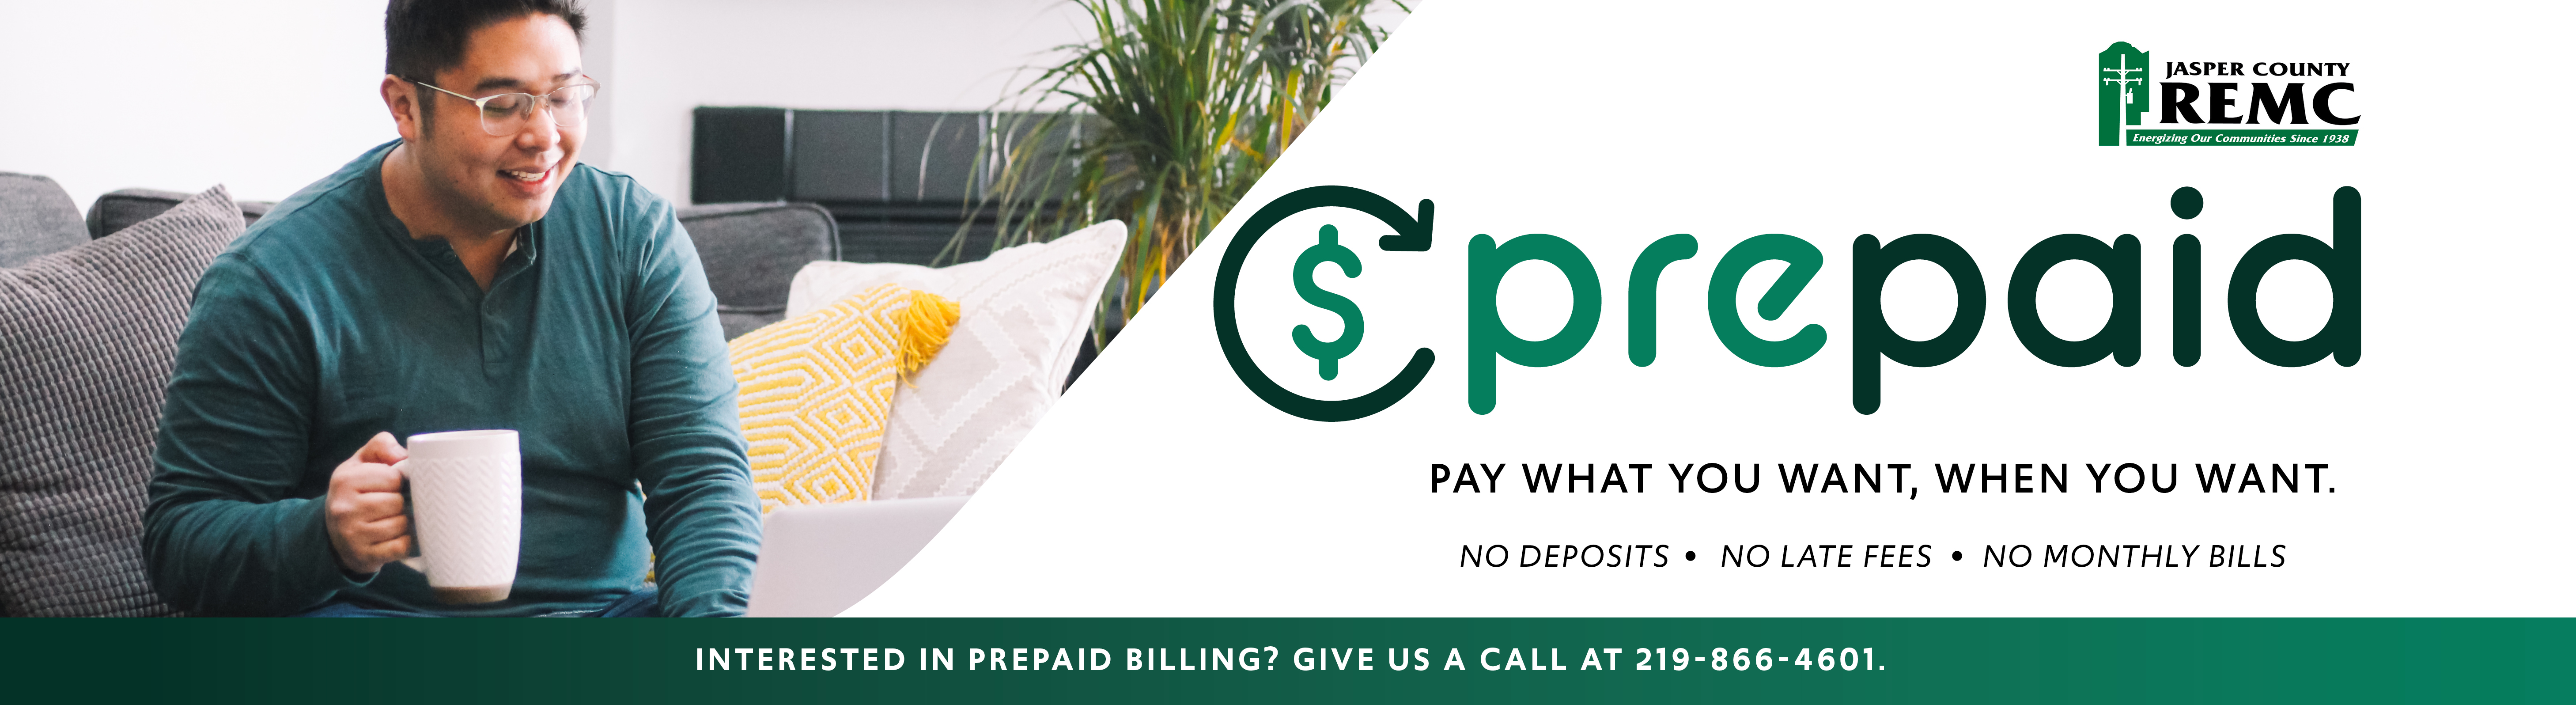 Sign up for Prepaid to pay what you want when you want.